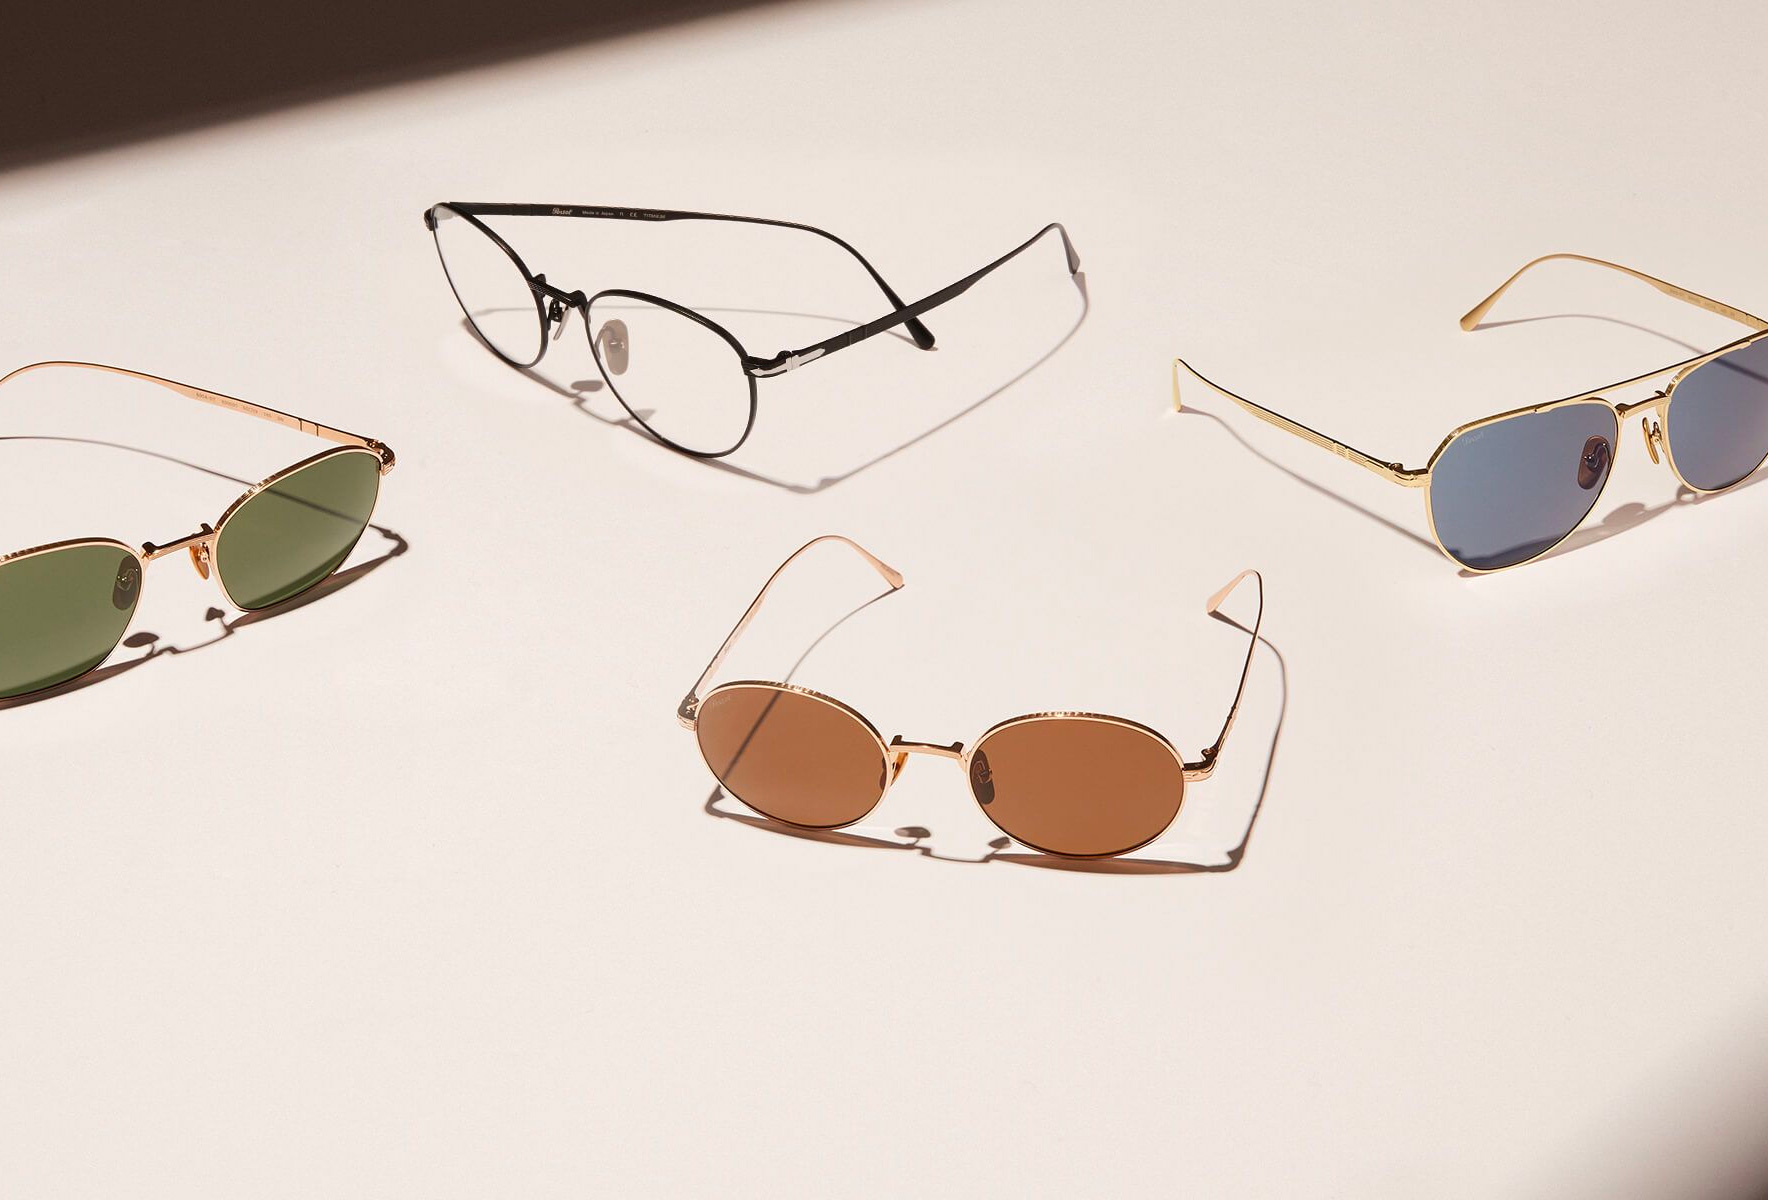 Persol's Titanium Collection Mixes Italian Style & Japanese Craftsmanship at werd.com